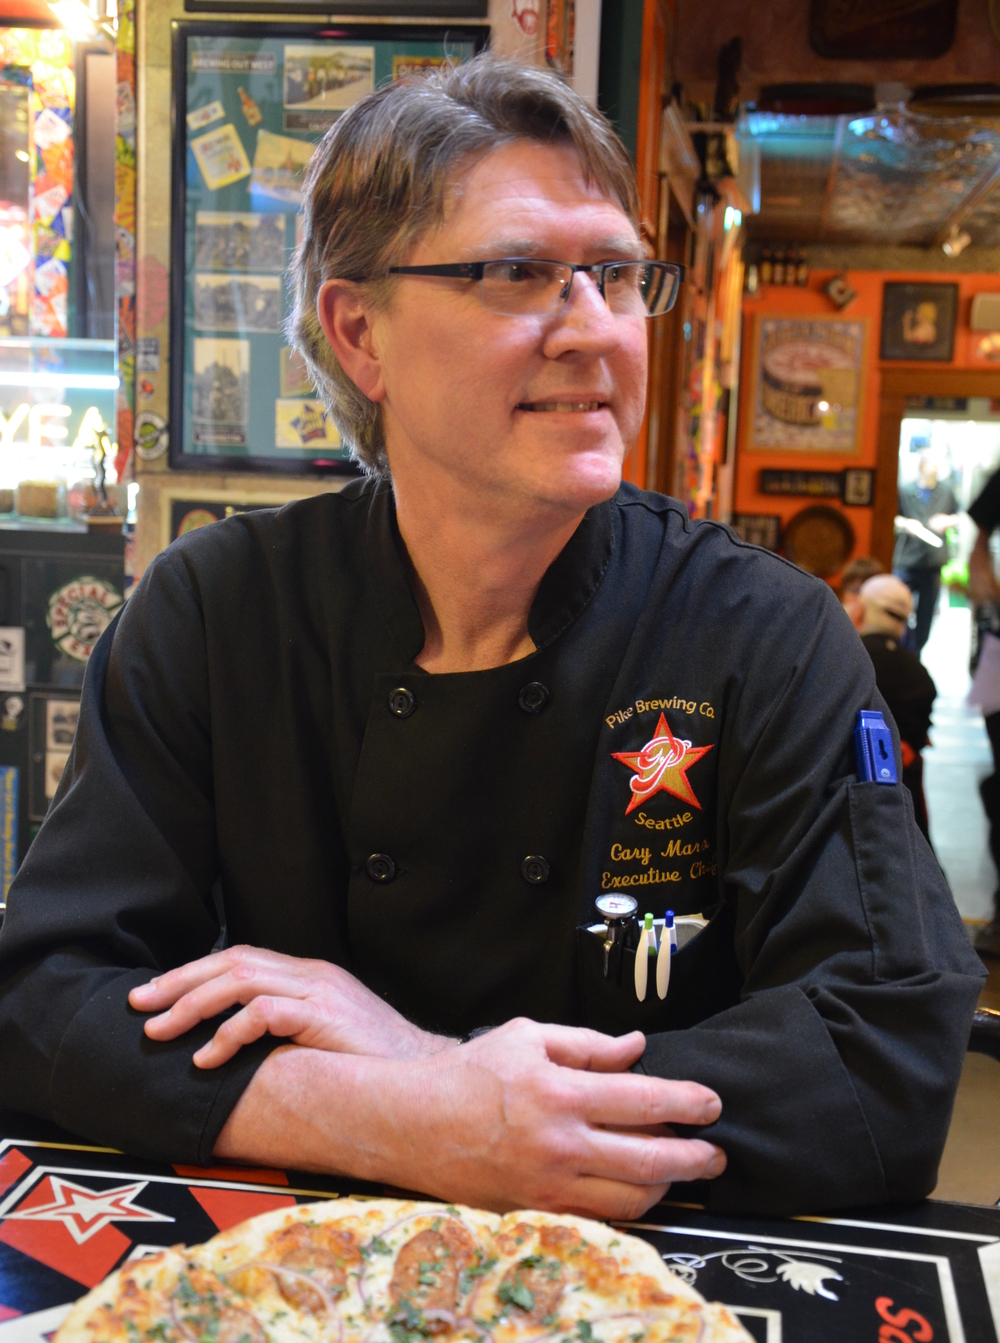 Owner and Executive Chef Gary Marx